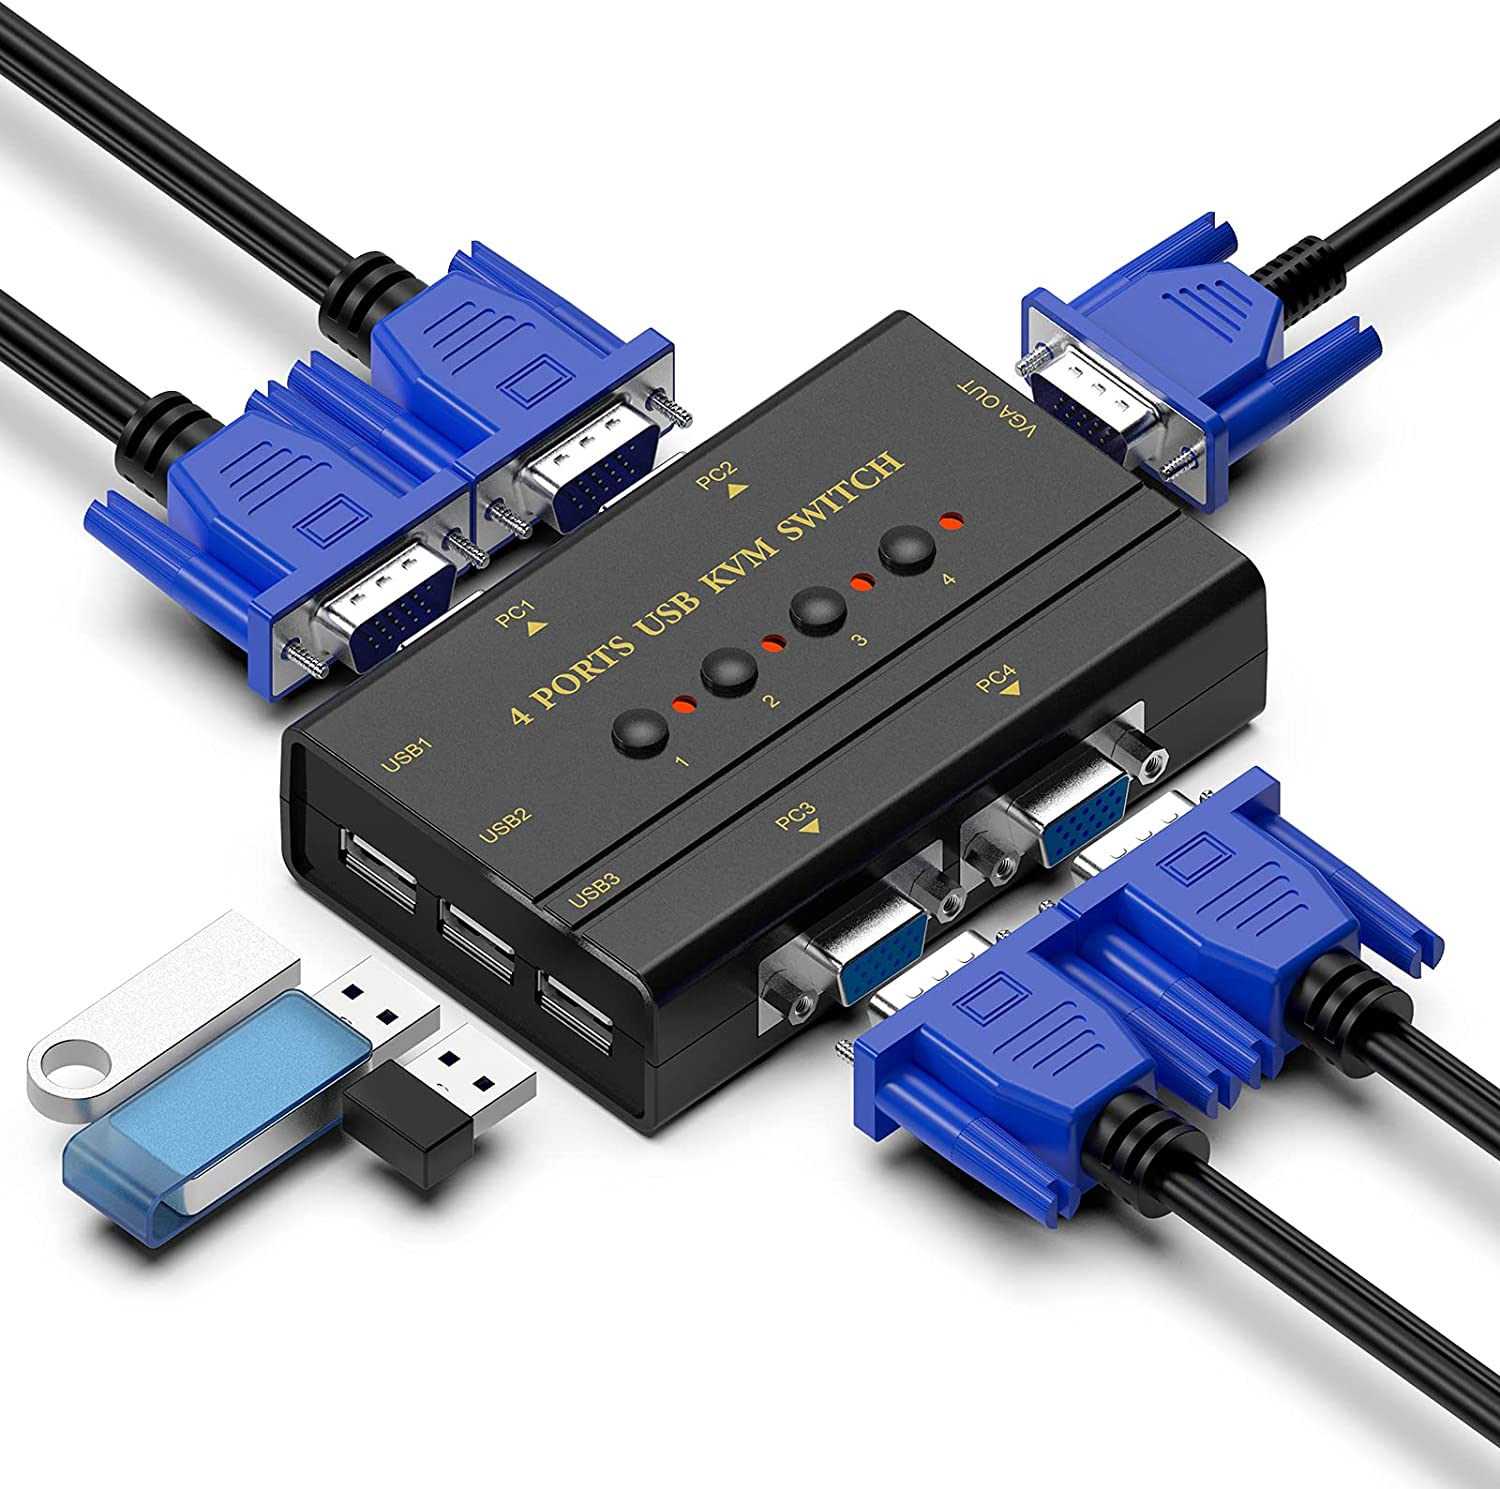 Max 60% OFF VGA KVM Switch 4 Port with Hub Selector USB Beauty products for 4PC